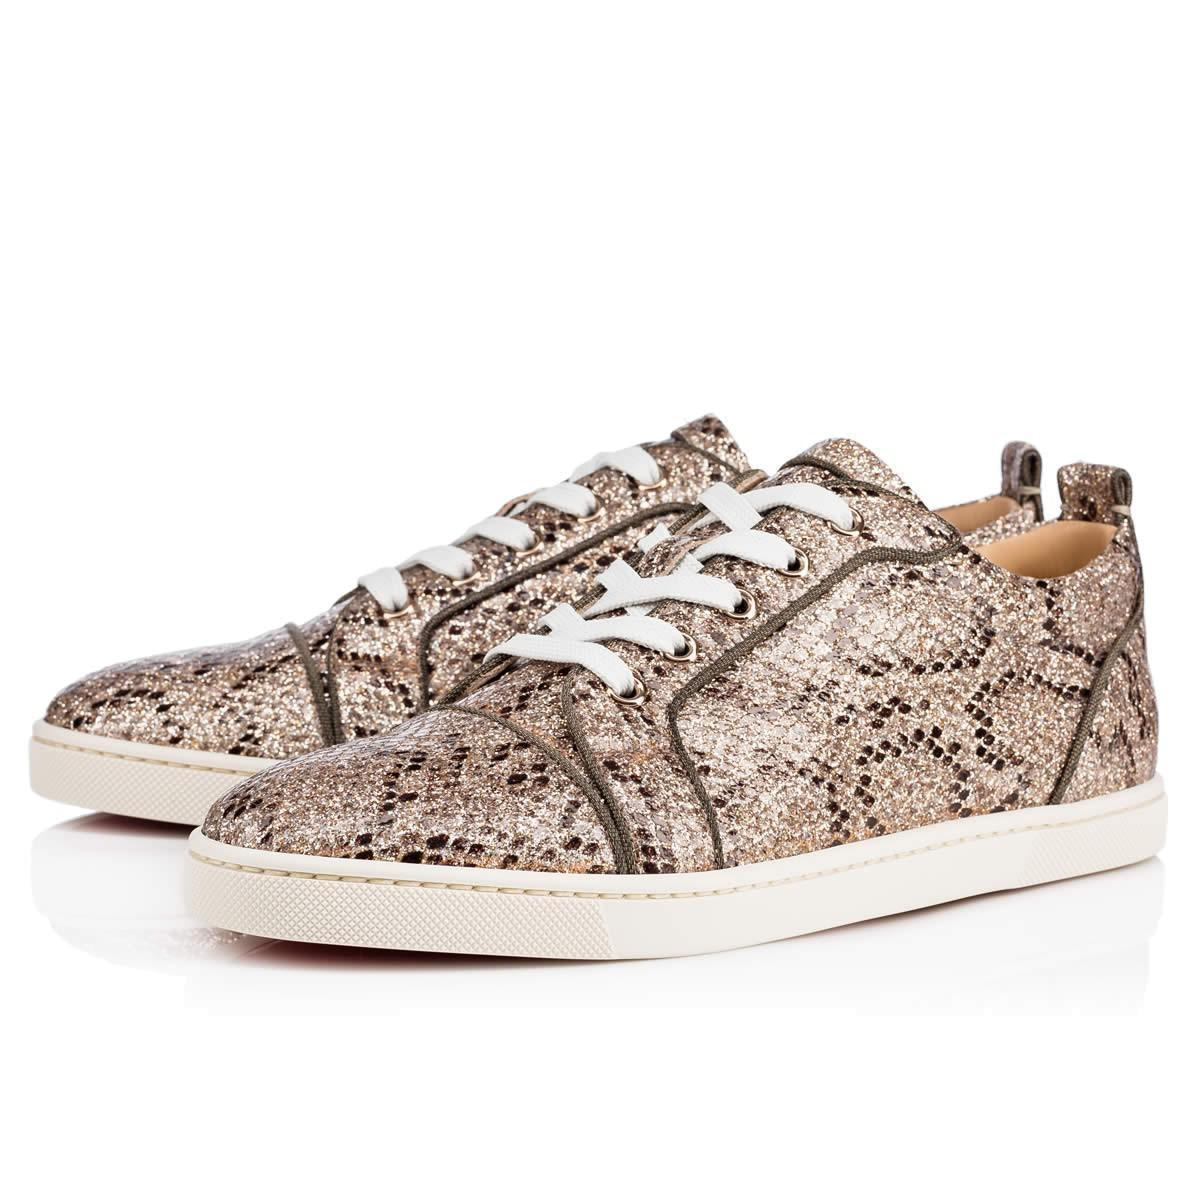 pretty nice 222c6 5a773 real christian louboutin sneakers studded lace 18e42 a7860